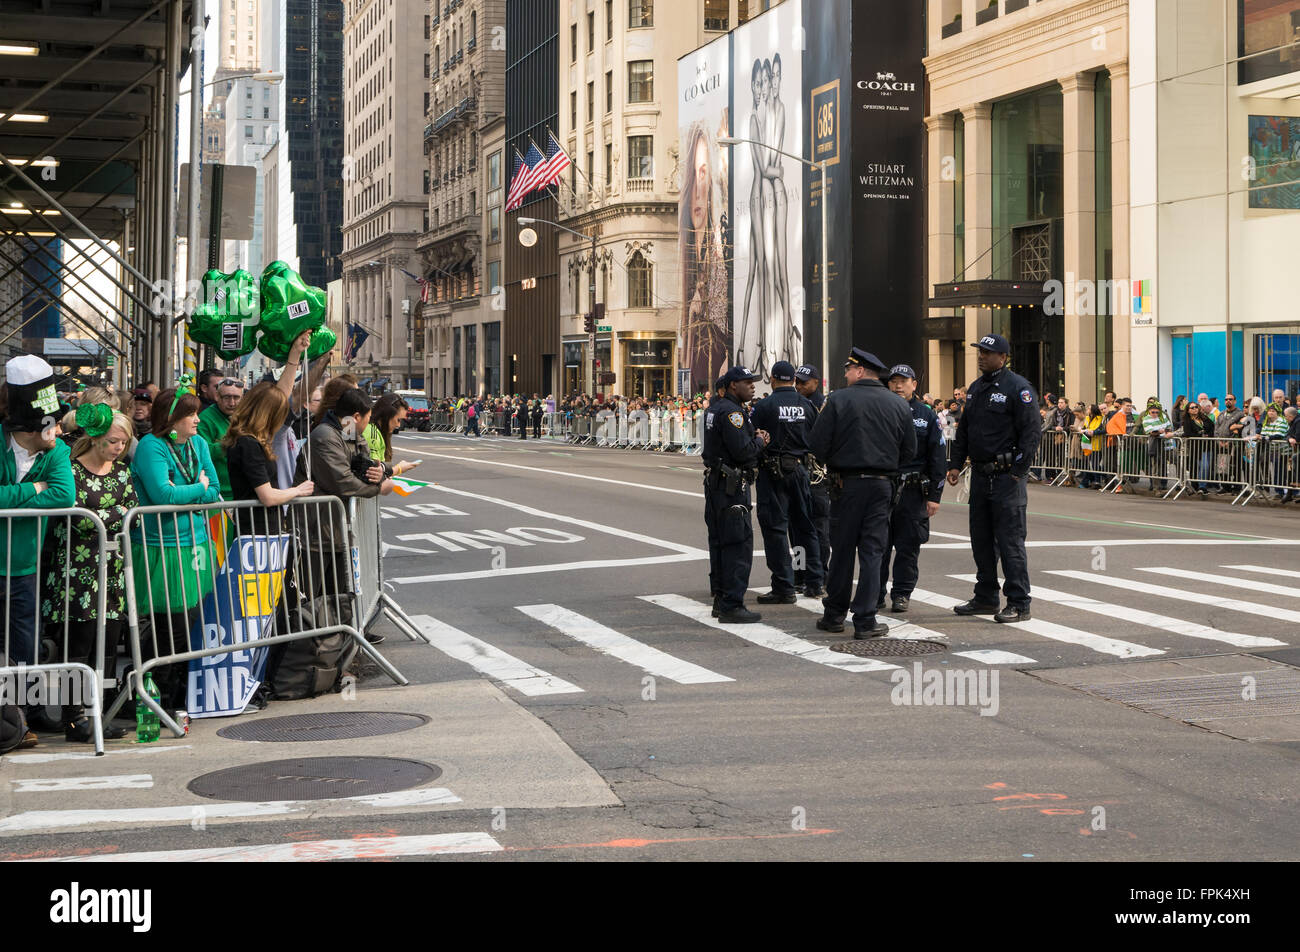 Police talking before the start of the annual St. Patrick's Day parade in New York City, with spectators looking - Stock Image